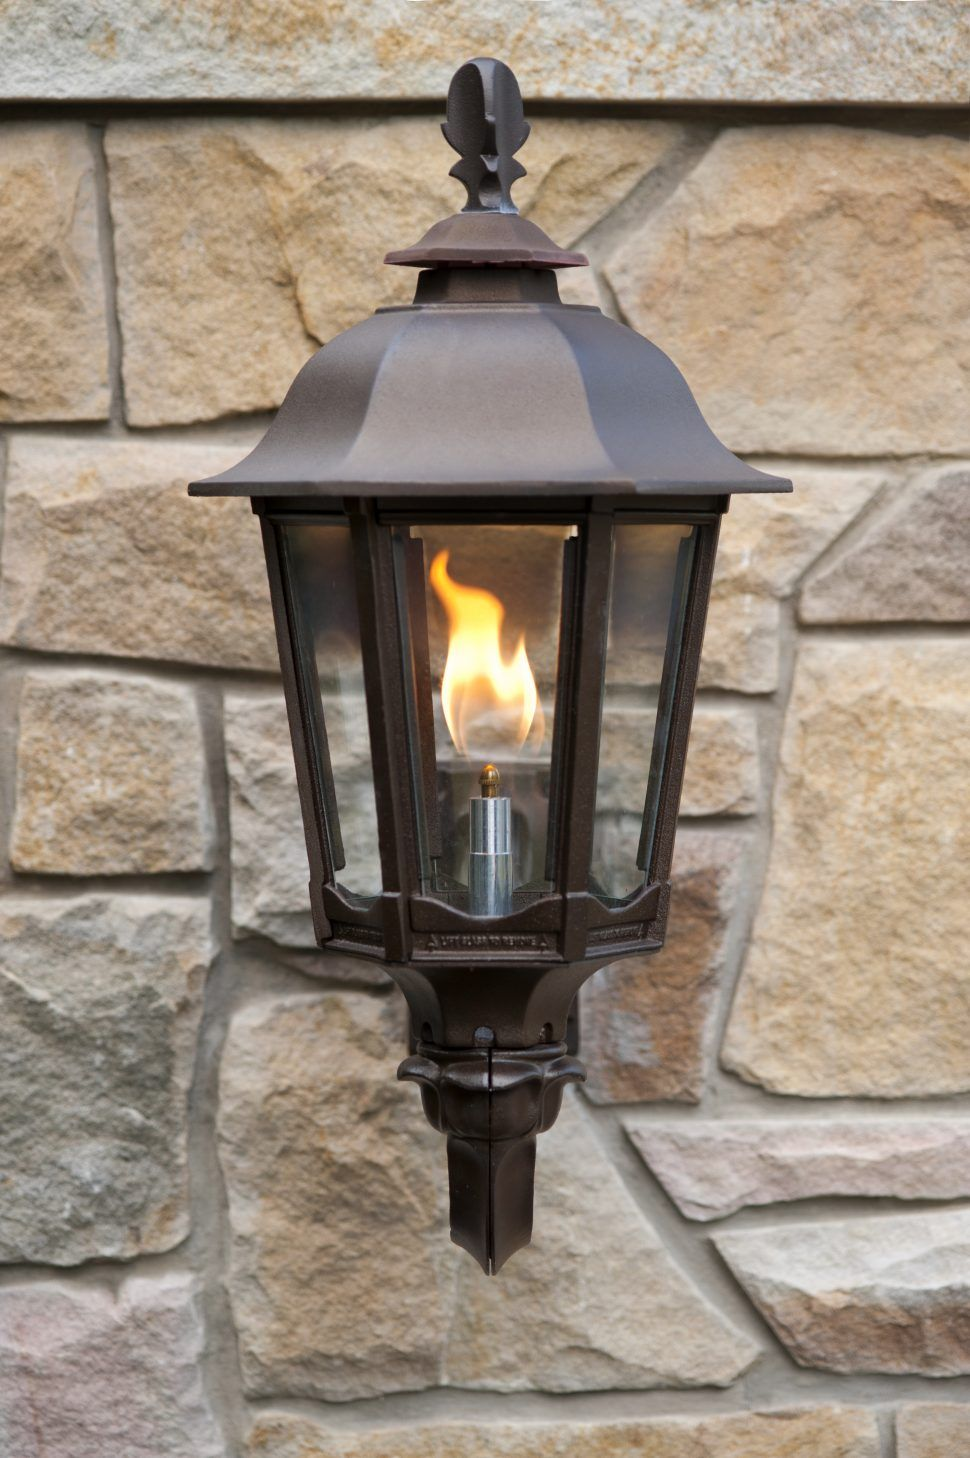 Fireplace Incredible Gaslight Lamp Home Decorating Outdoor Gas Lights Propane Full Size Interior Decorative Lanterns Exteri American Gas Gas Lamp Home Lanterns